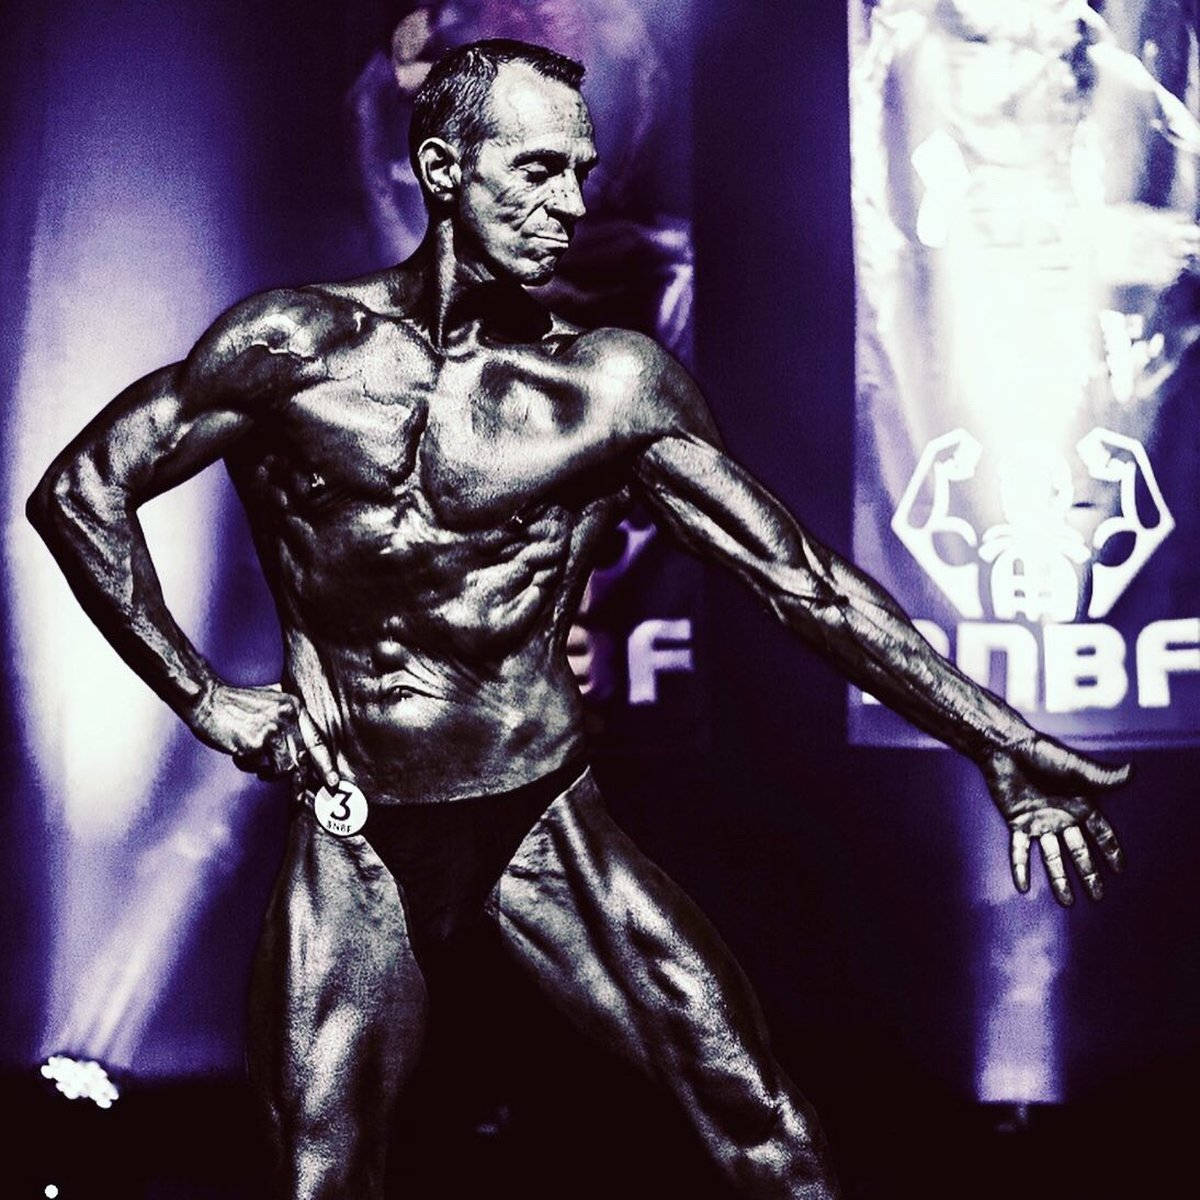 BNBF Central 2019: Tim placed third in the 2019 BNBF Central Over 50s Competition.  Using his methods can help bring you success too.